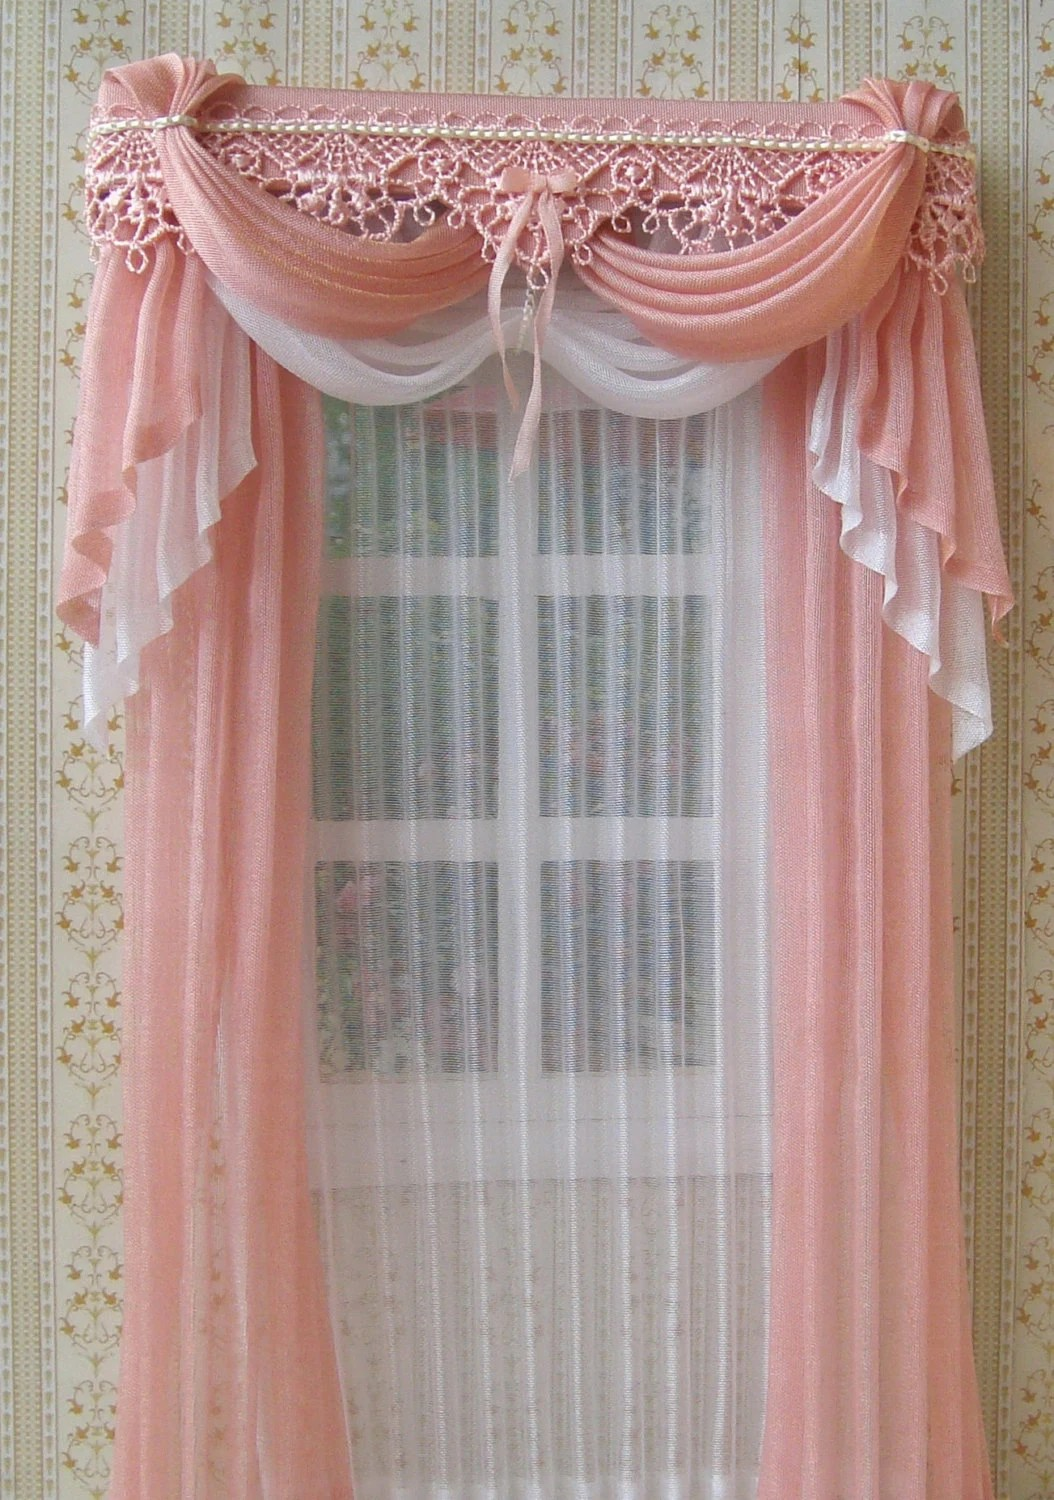 Cortinas Para Dormitorios De Niñas Miniature 1 12 Dollhouse Curtains To Order